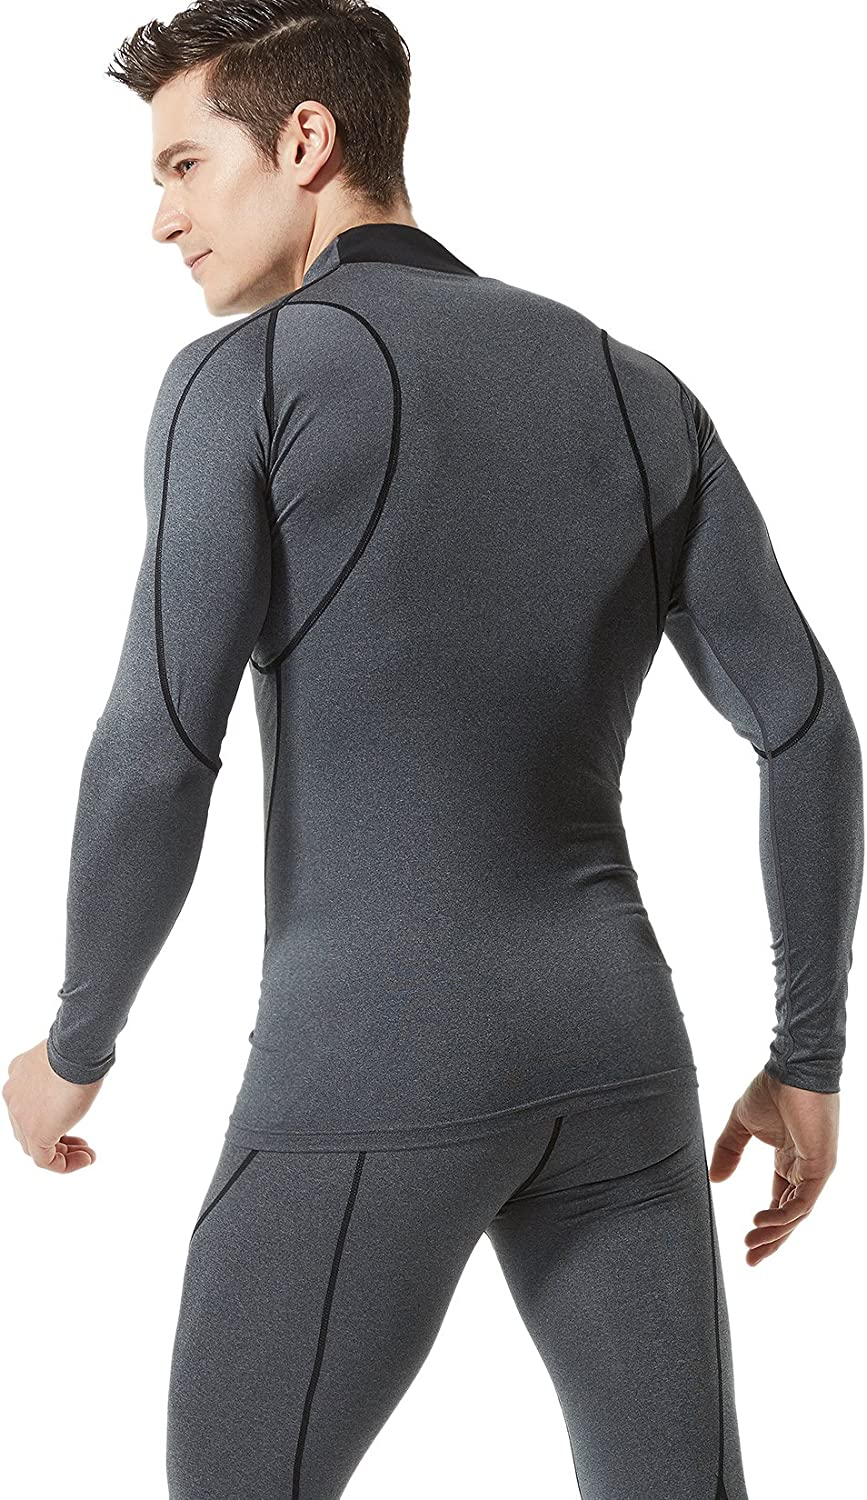 Pack of 1, 2, 3 TSLA Mens Mock Long-Sleeved T-Shirt Cool Dry Compression Baselayer